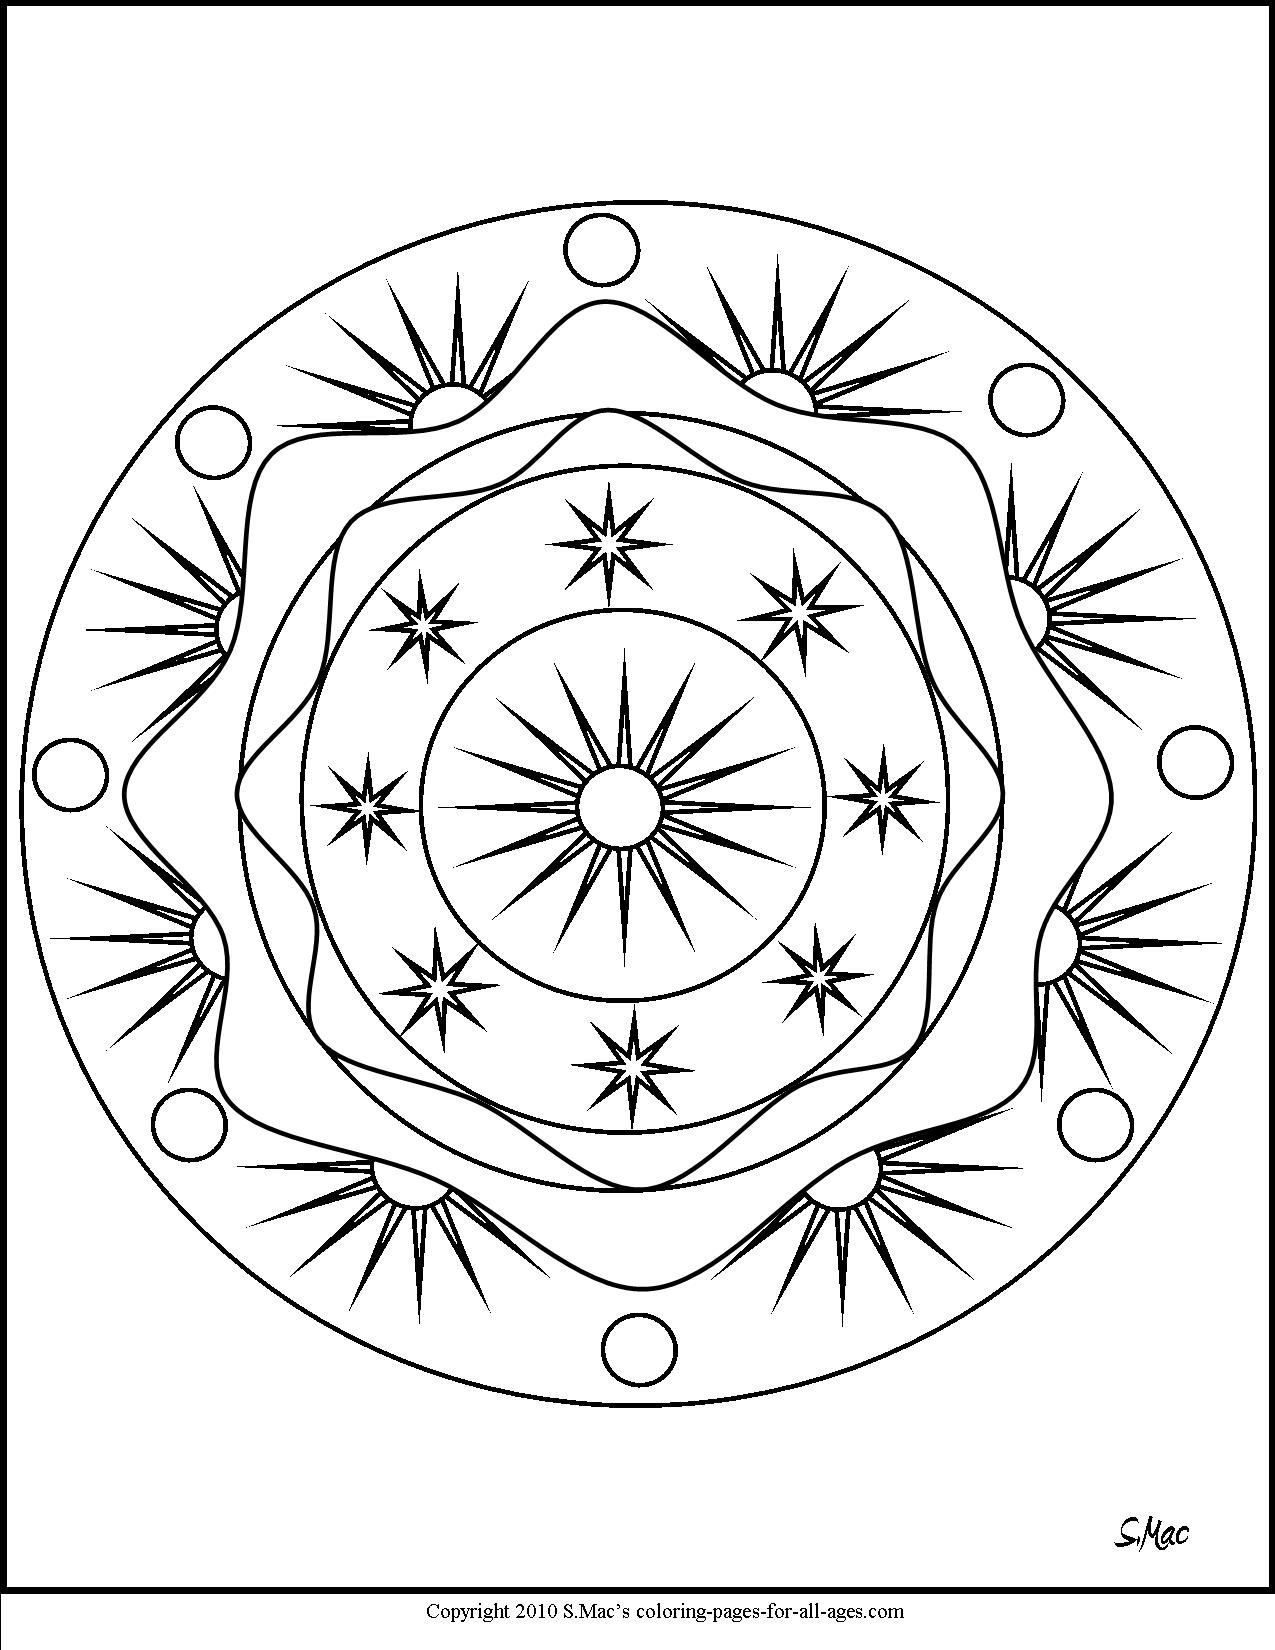 1275x1650 Mandala Coloring Pages S.mac's Place To Be